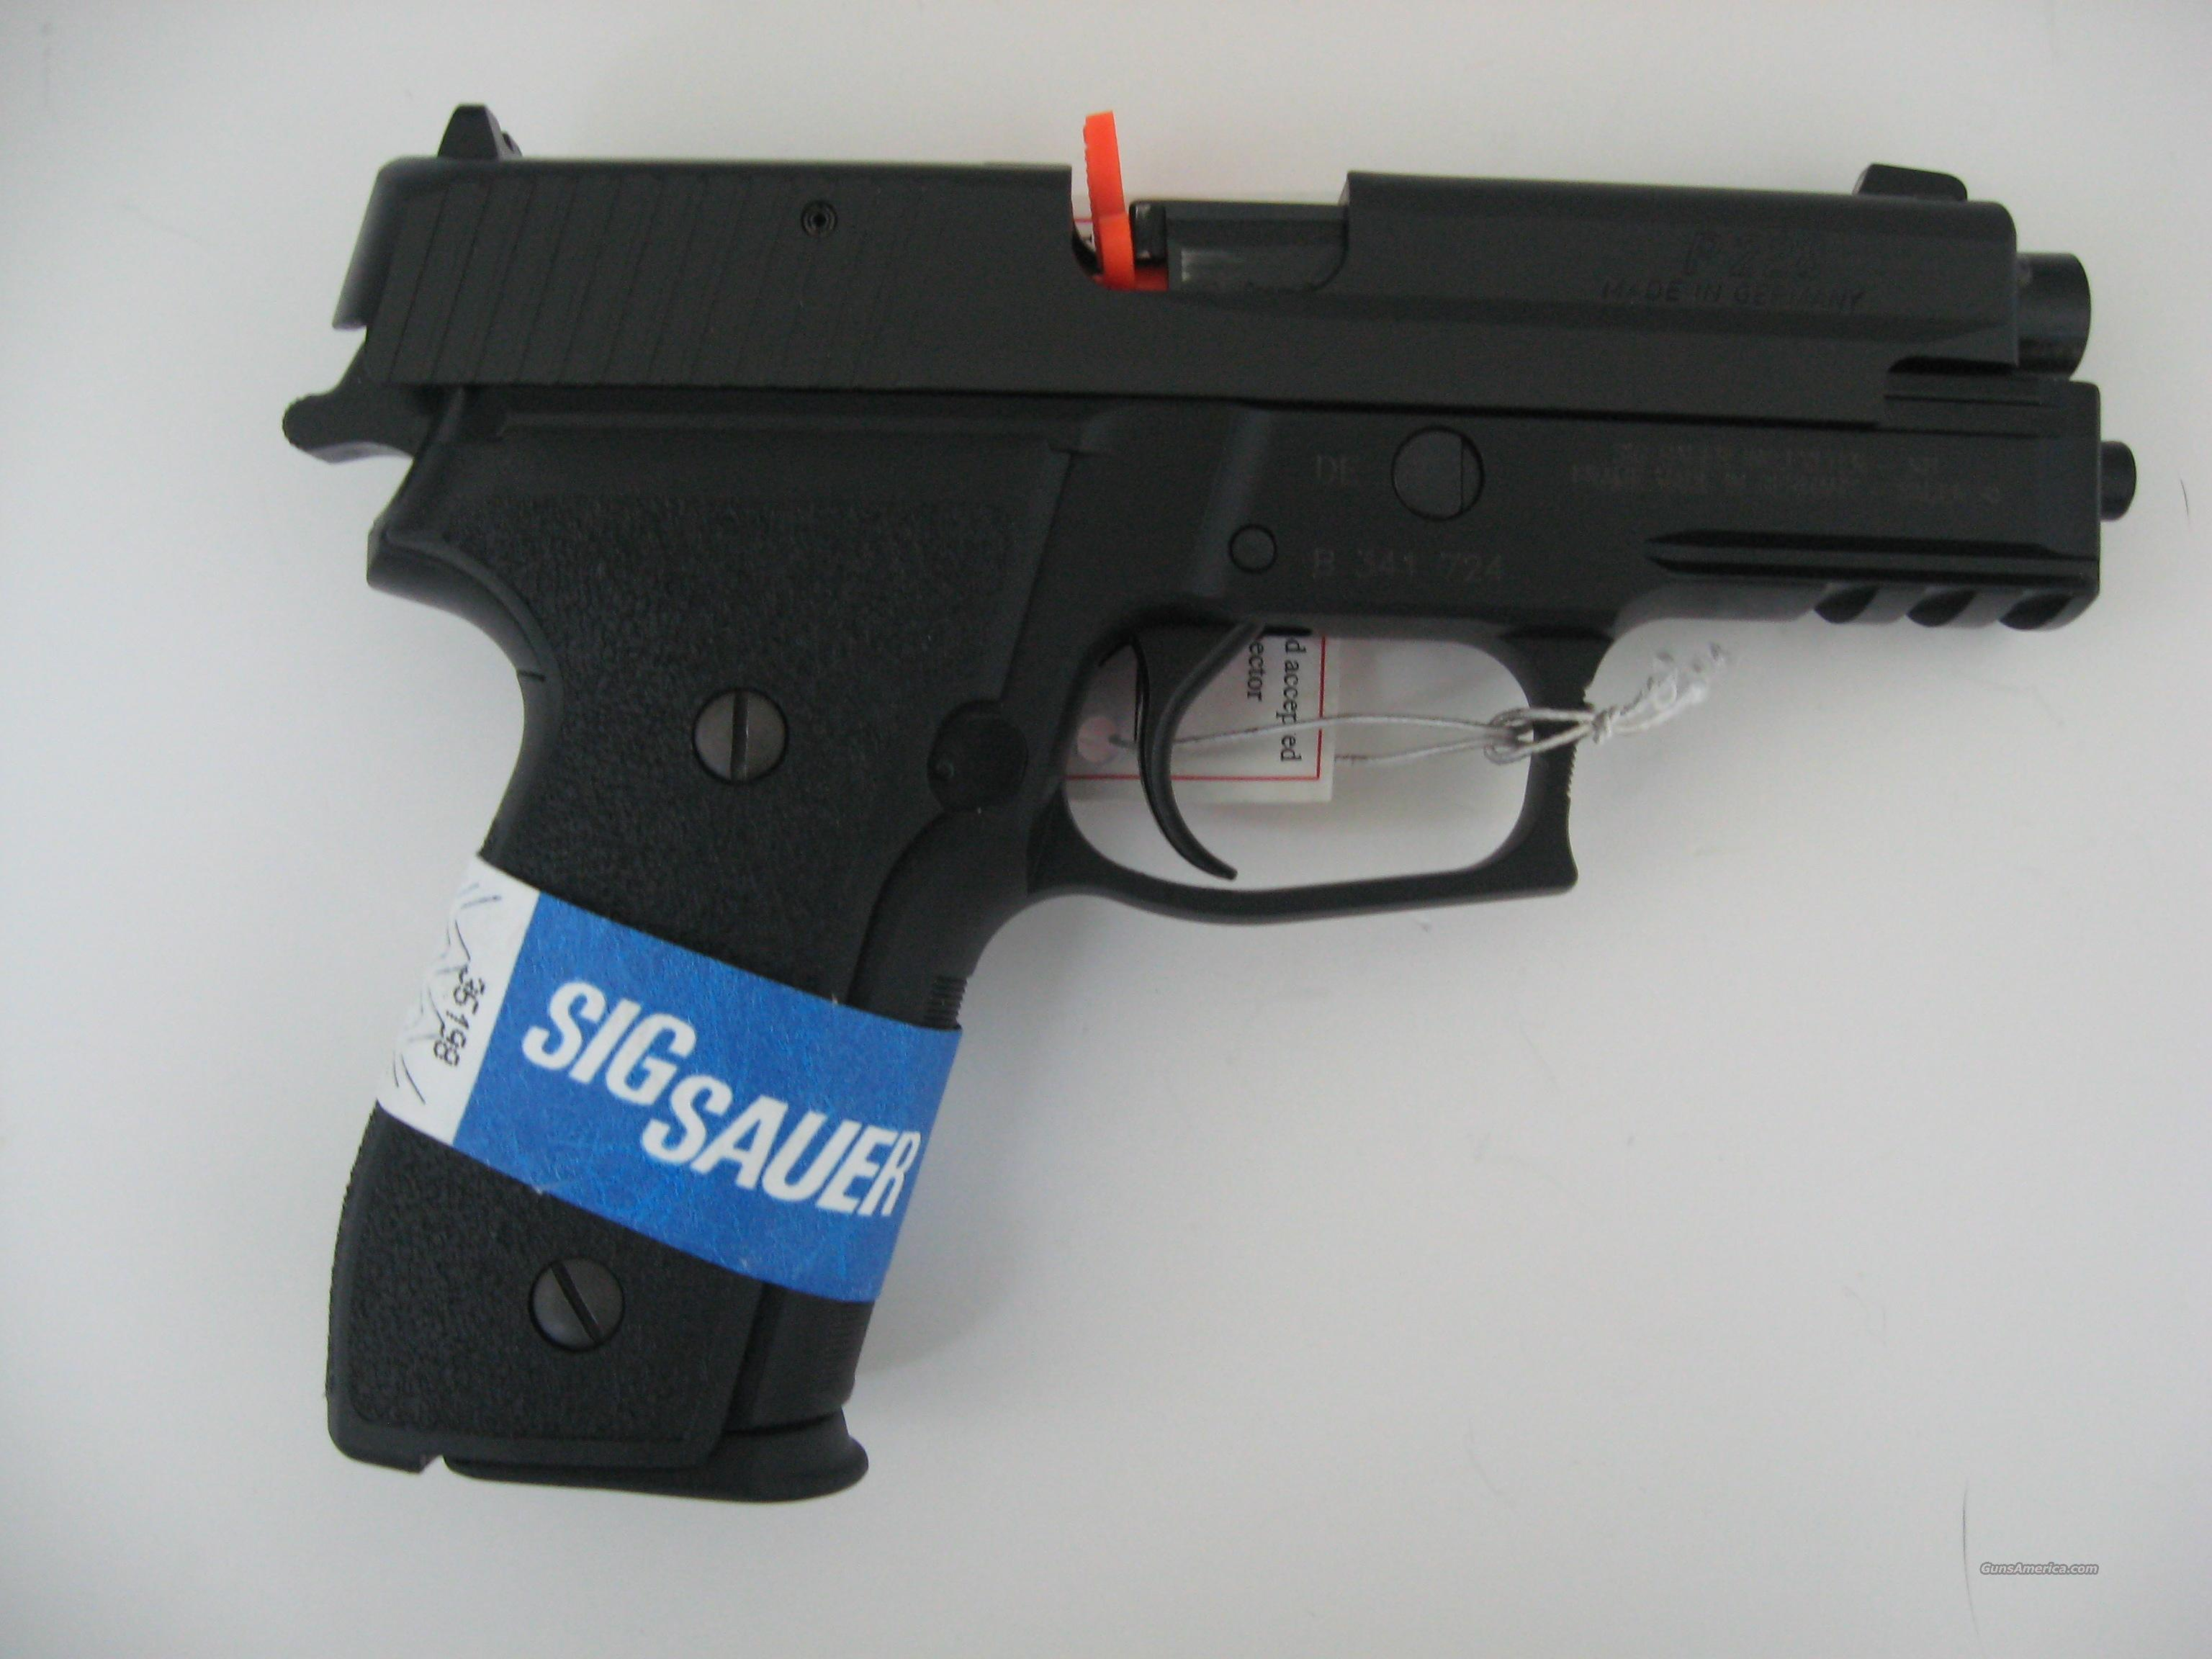 New Sig Sauer P228R - 9mm – 2 mags    Guns > Pistols > Sig - Sauer/Sigarms Pistols > P228